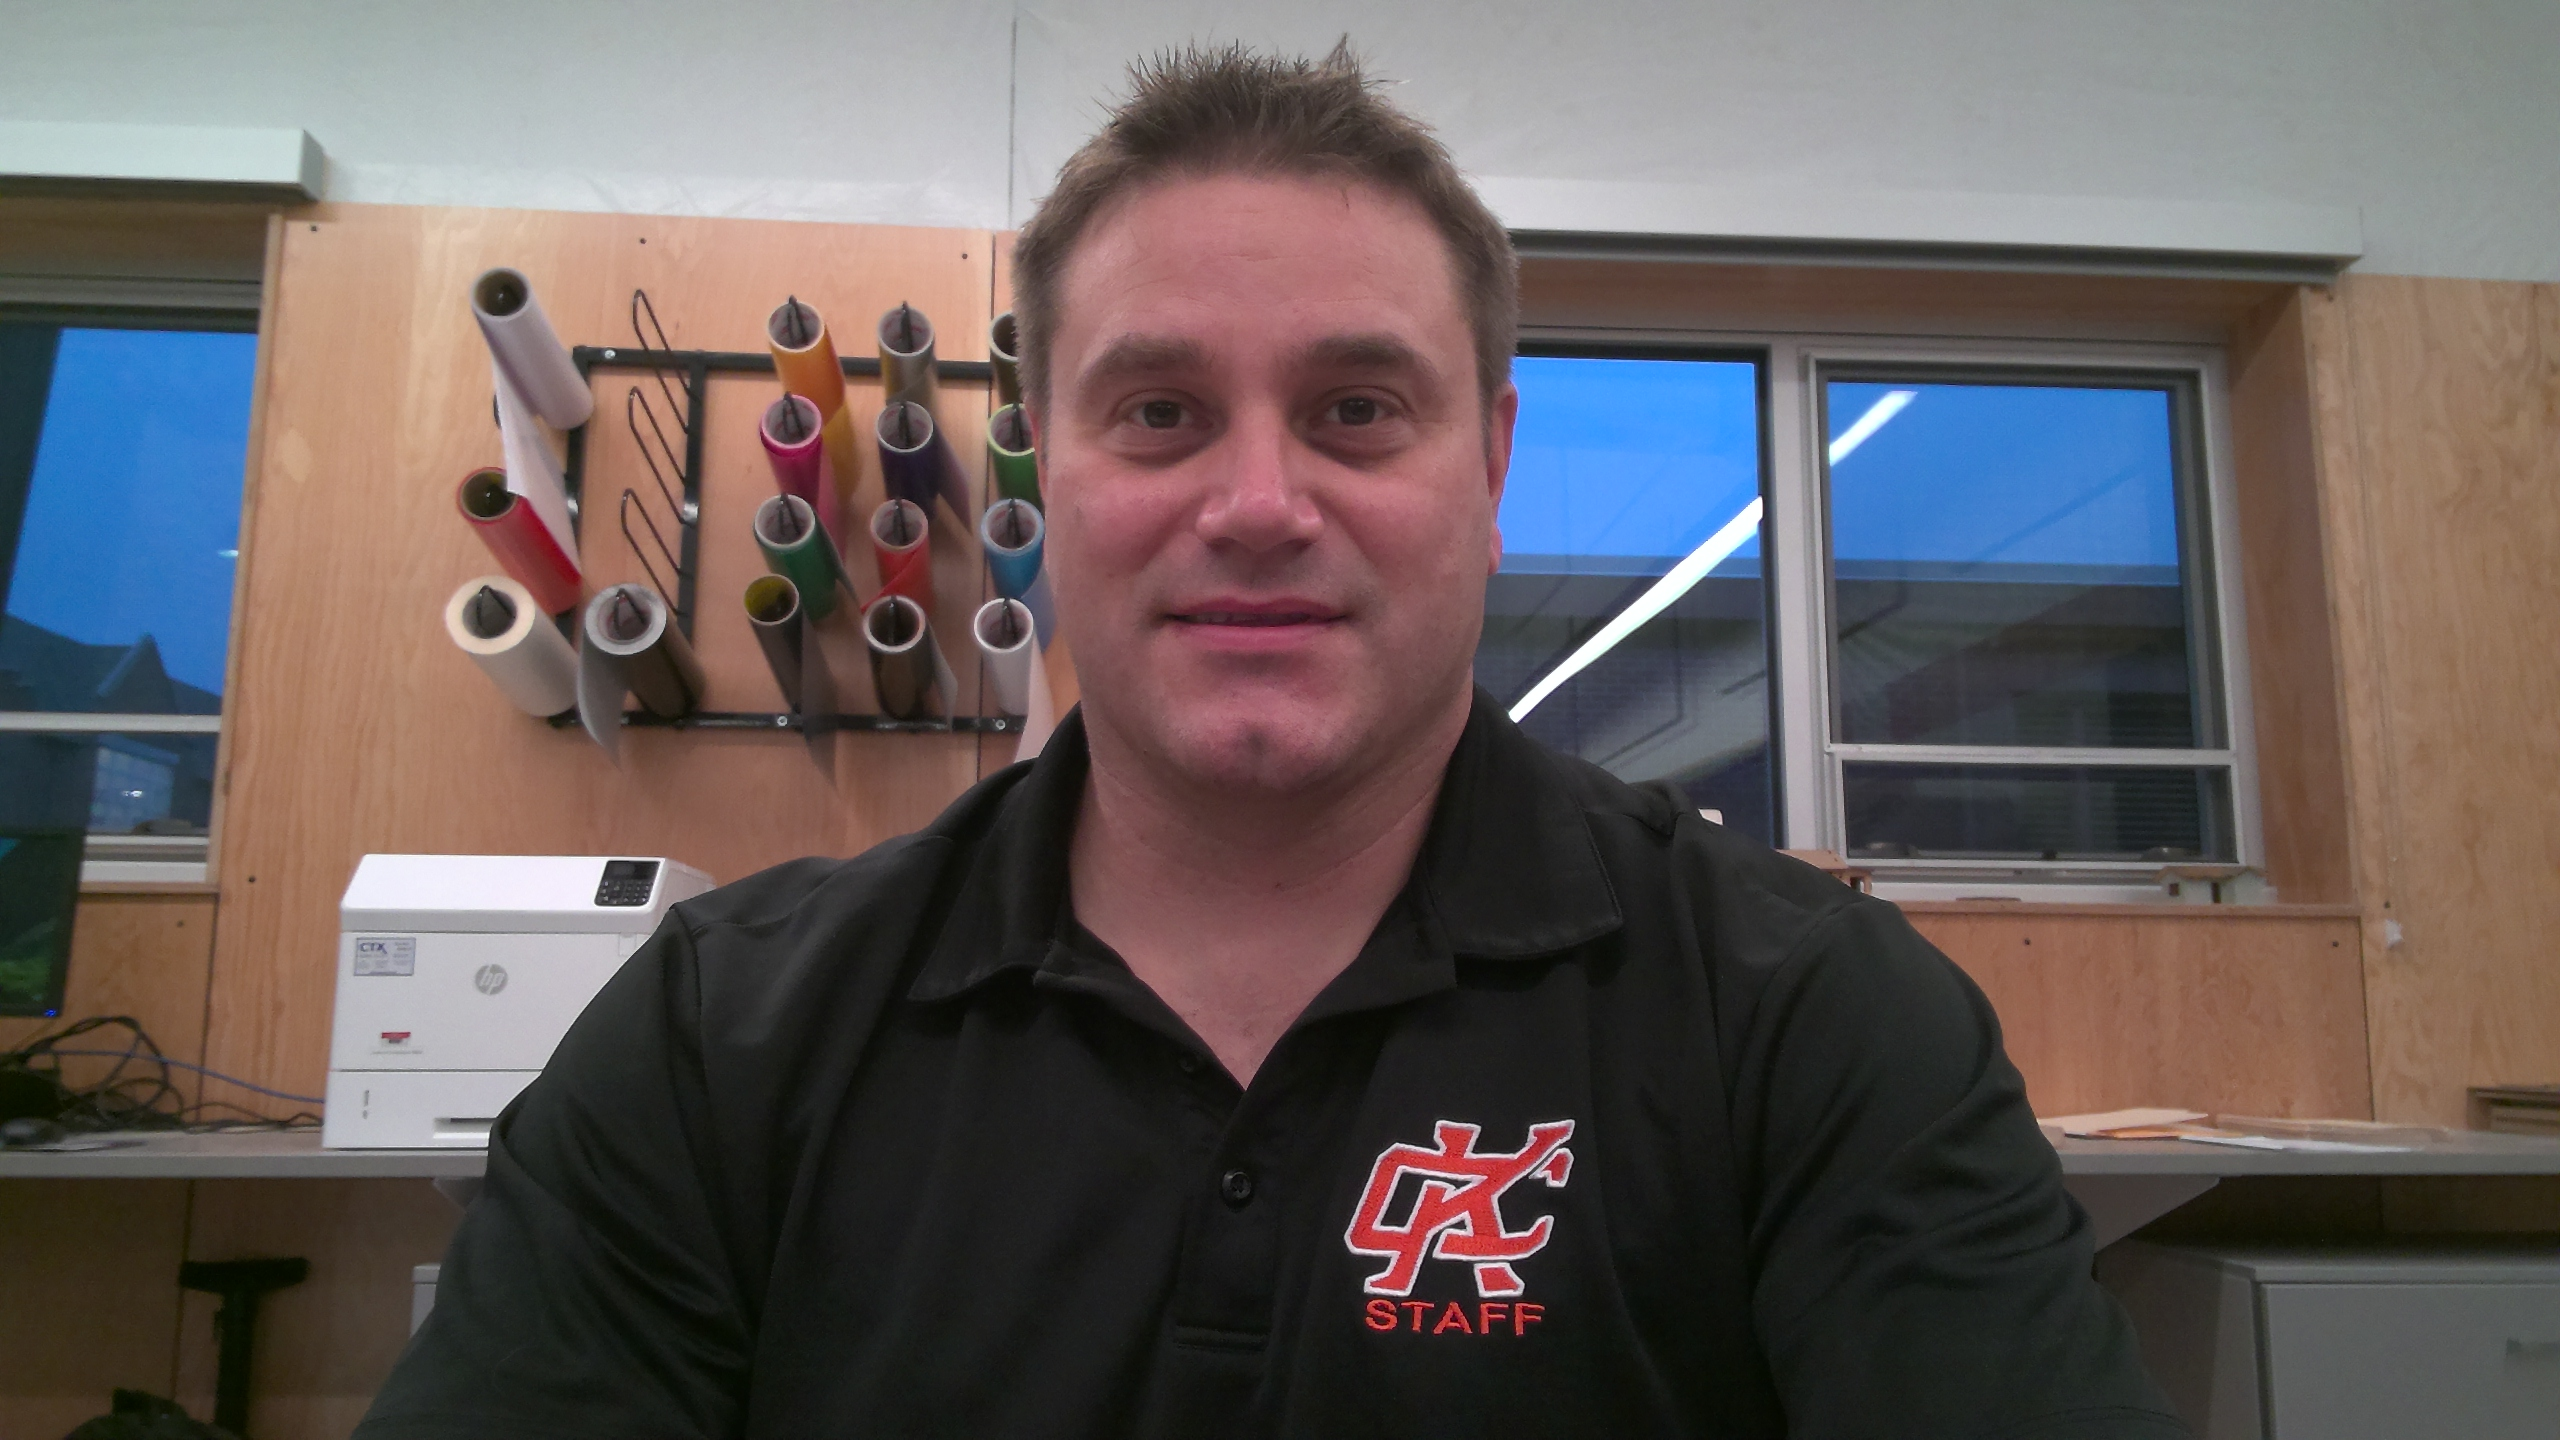 Cory Torpa, Career & Technology Education Teacher/Director